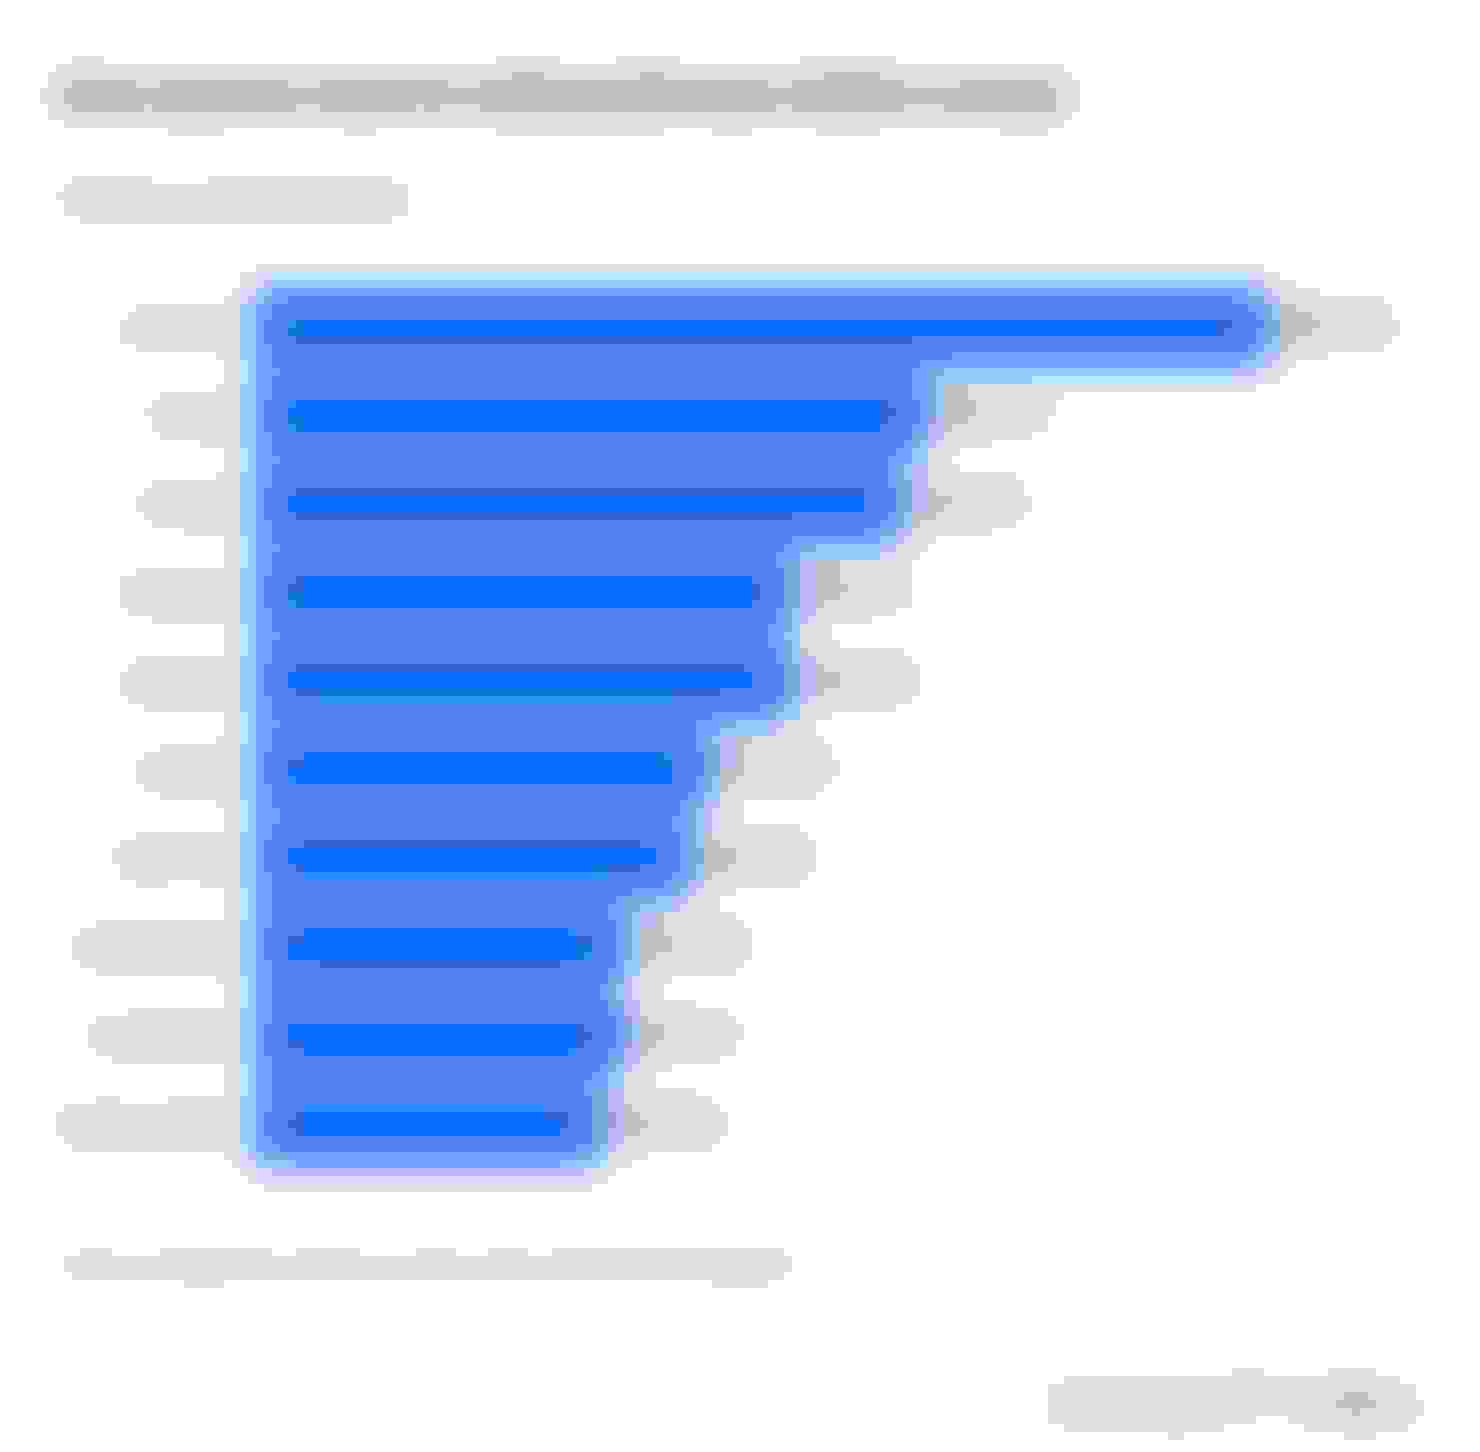 Most expensive states for adding BIL